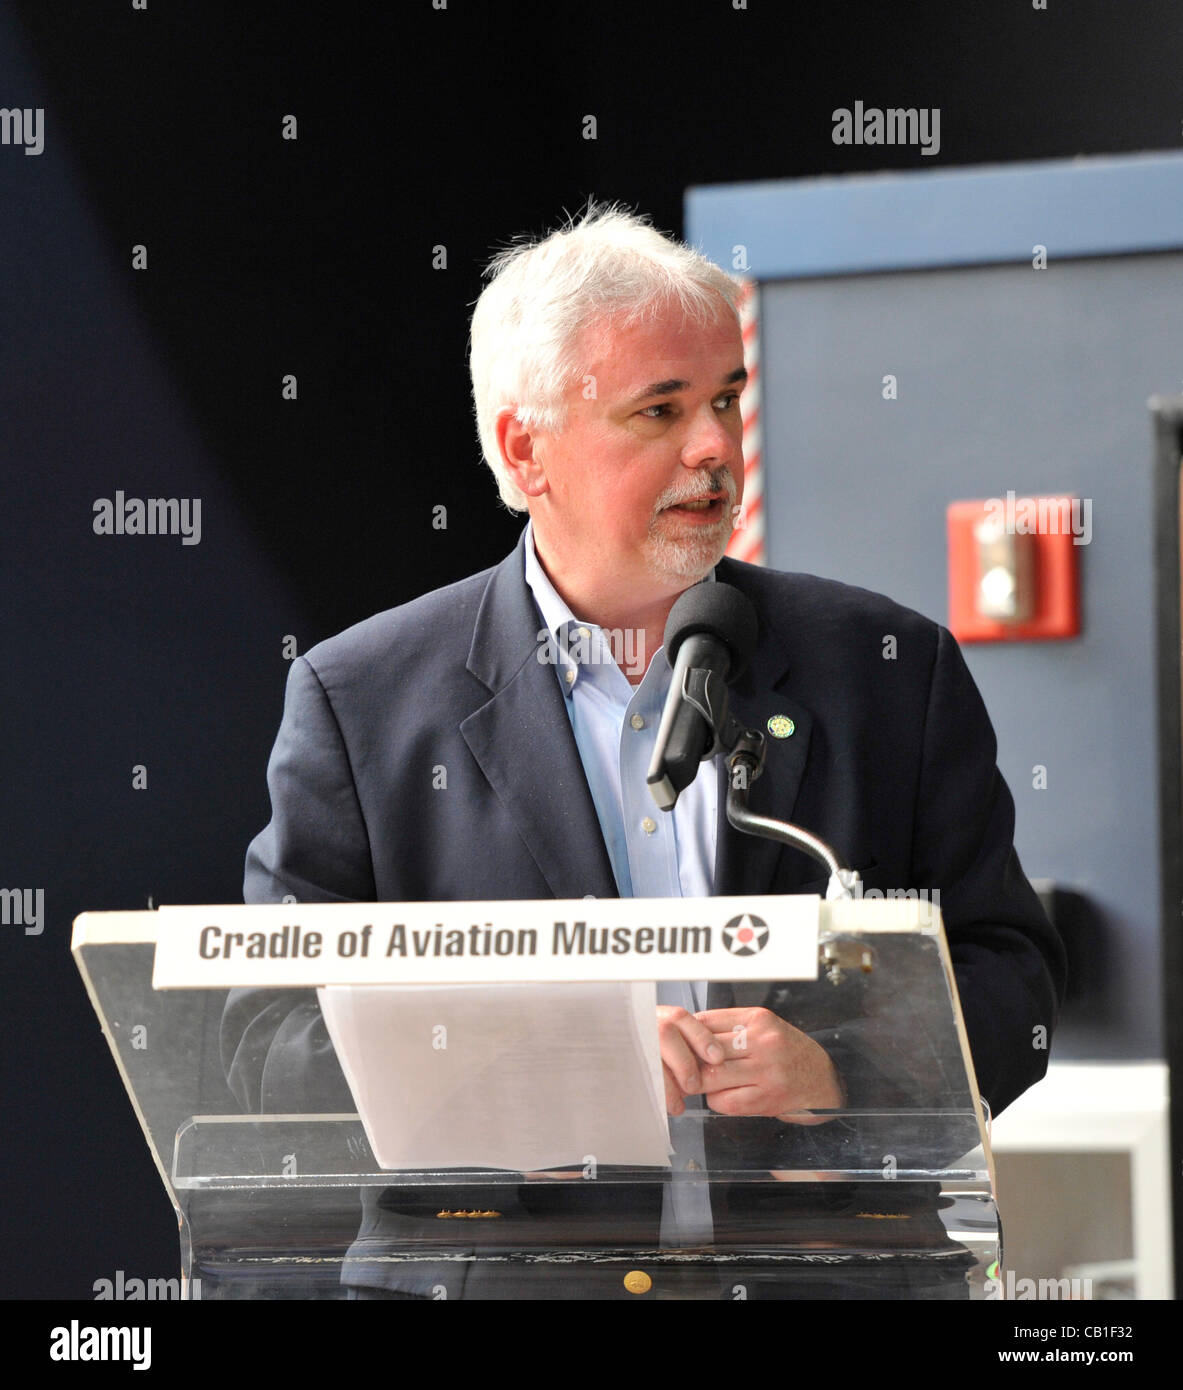 Andy Parton, Executive Director of Cradle of Aviation Museum, during 85th anniversary celebration of Charles Lindbergh's - Stock Image